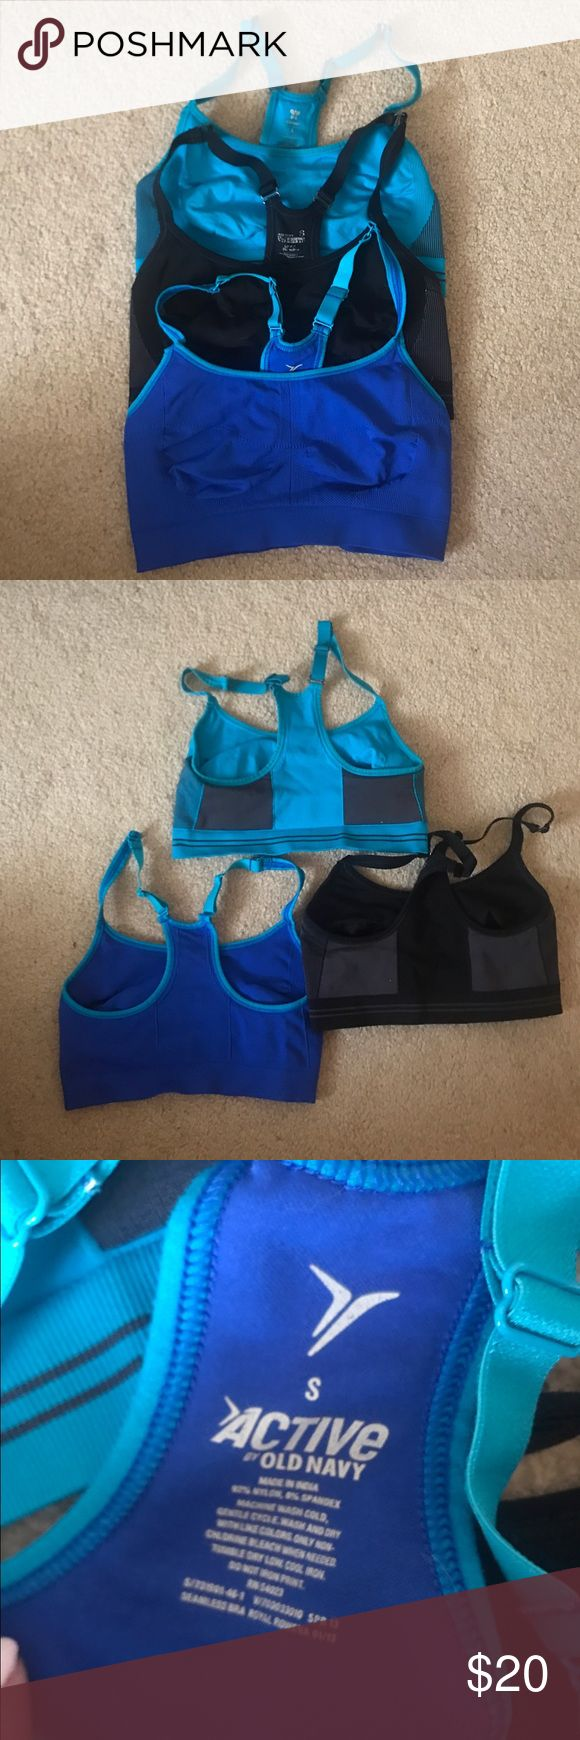 Lot of 3 Old Navy sports bras 3 Old Navy sports bras size S... originally $12 each.. great condition.., one black, one aqua, one blue Old Navy Intimates & Sleepwear Bras